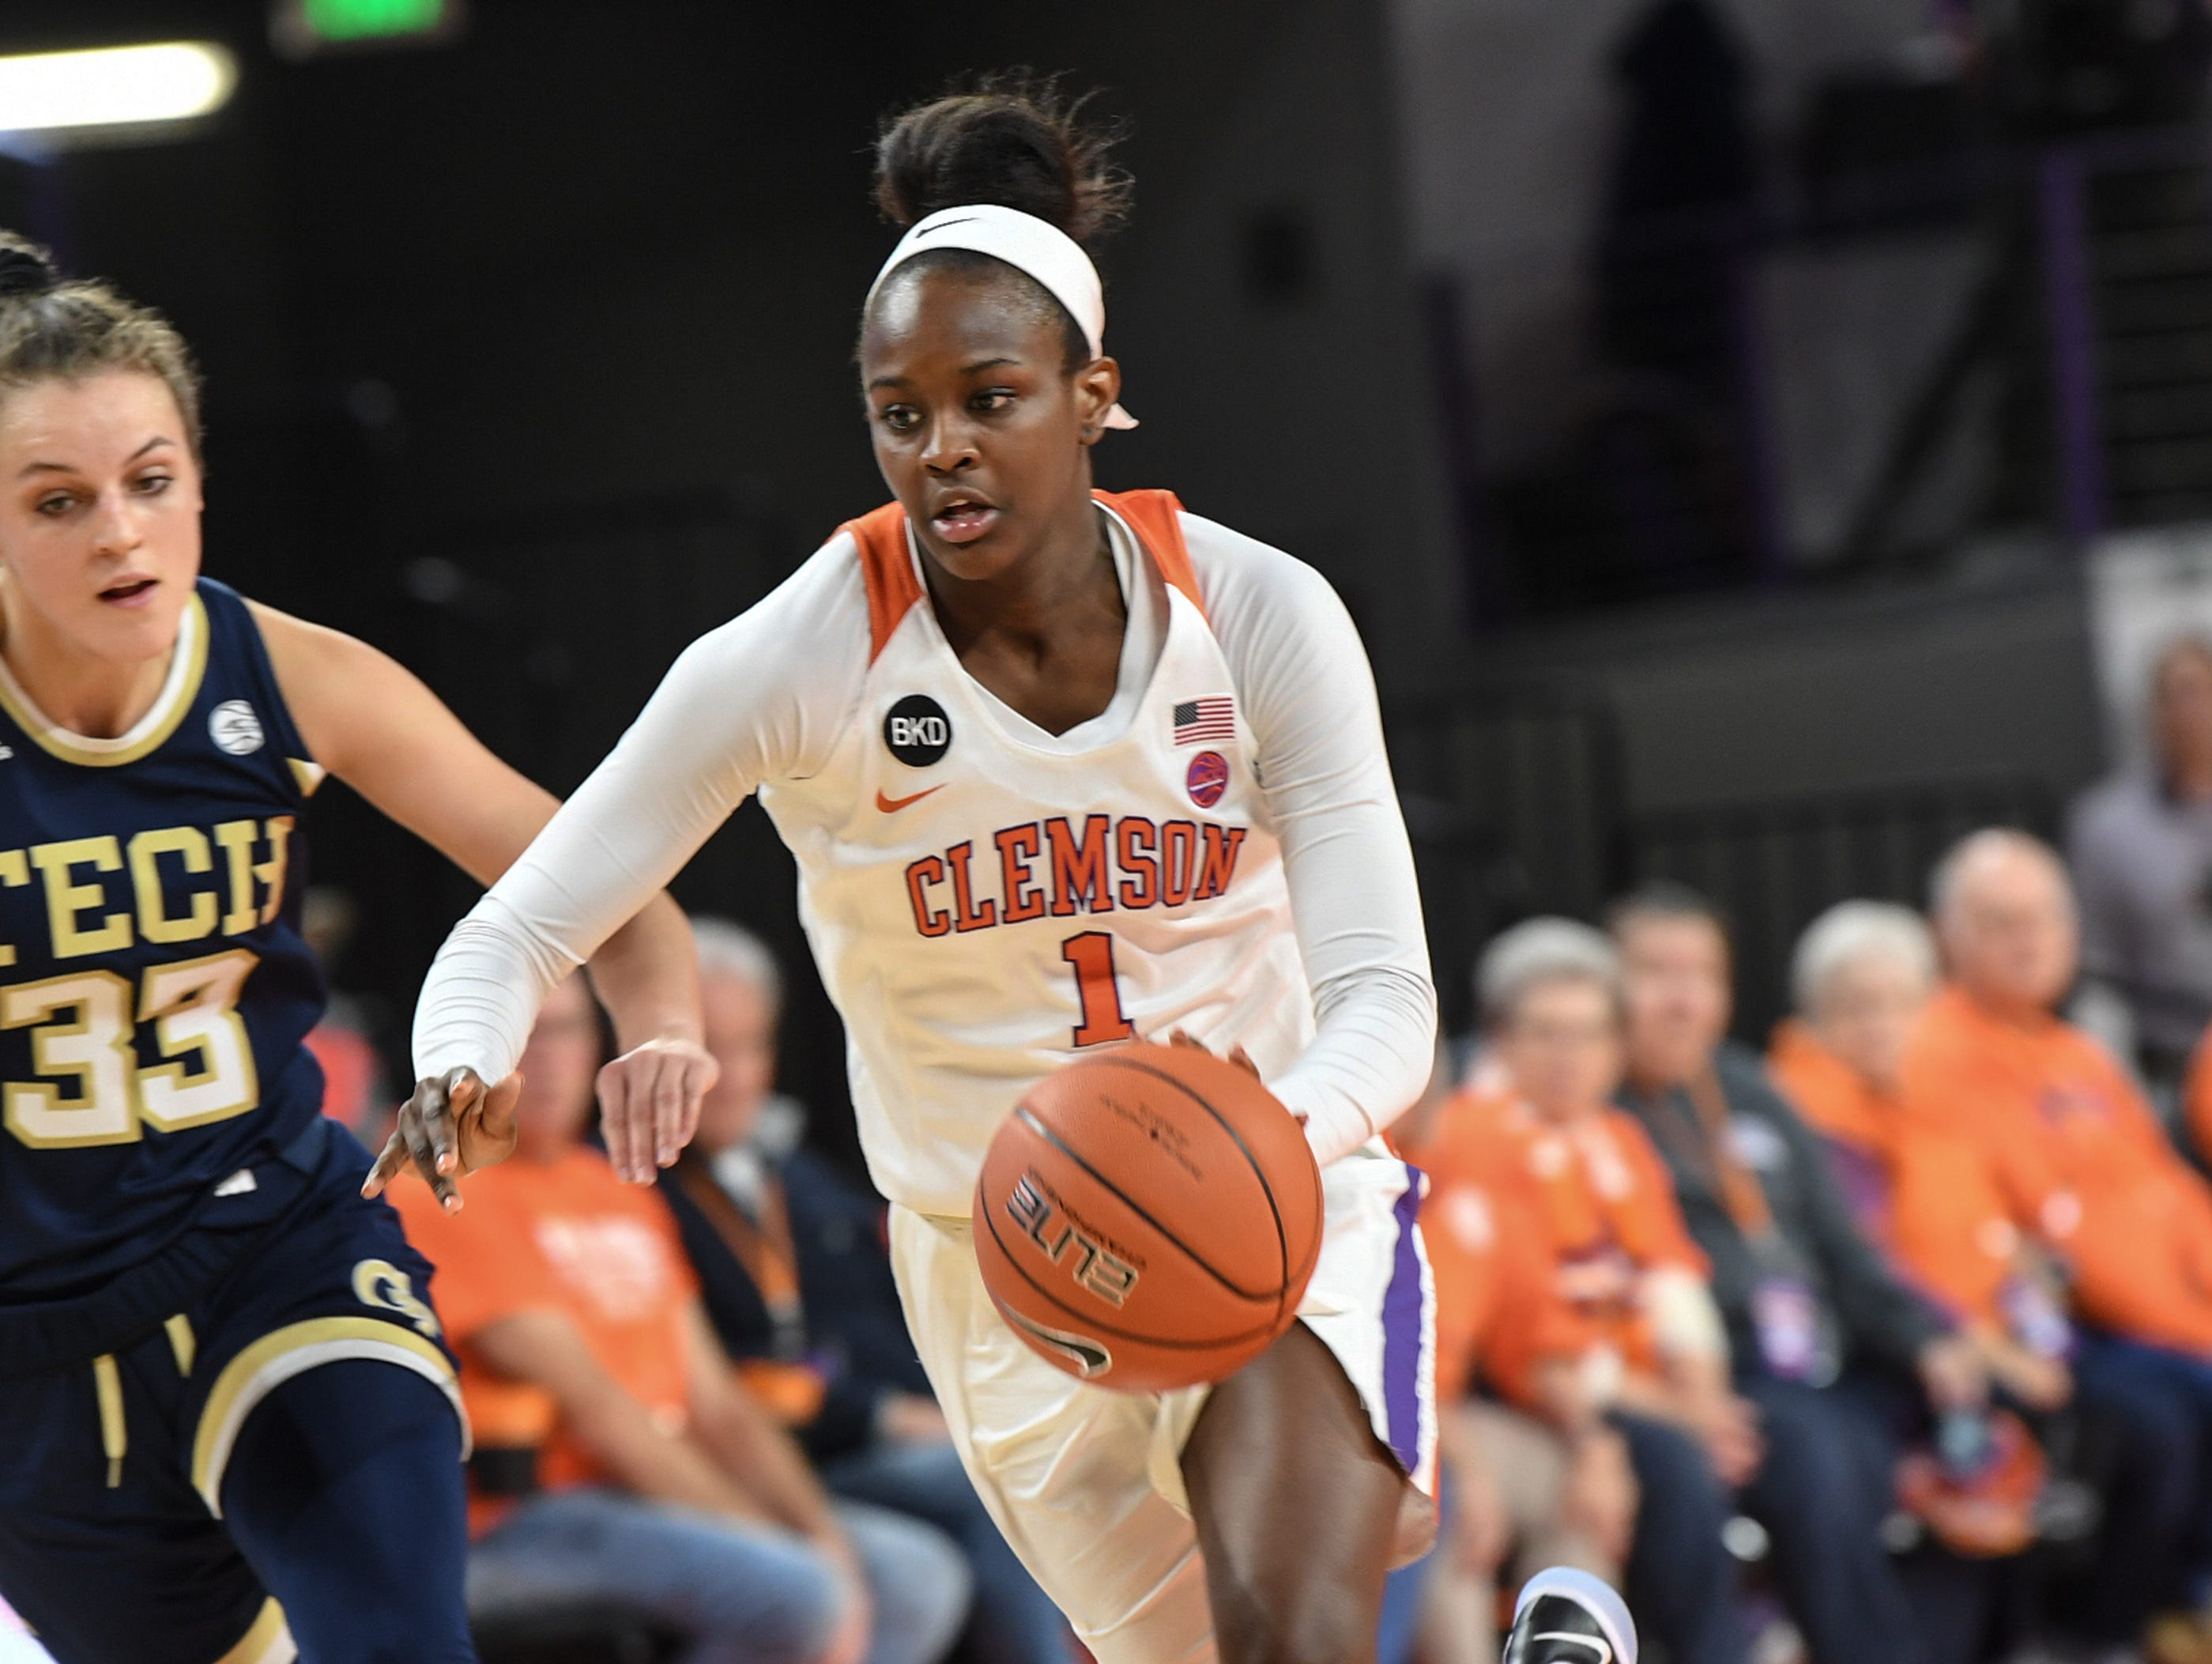 Clemson guard Destiny Thomas(1) dribbles near Georgia Tech guard Frescesca Pan(33) during the fourth quarter at Littlejohn Coliseum in Clemson Thursday, January 17, 2019.